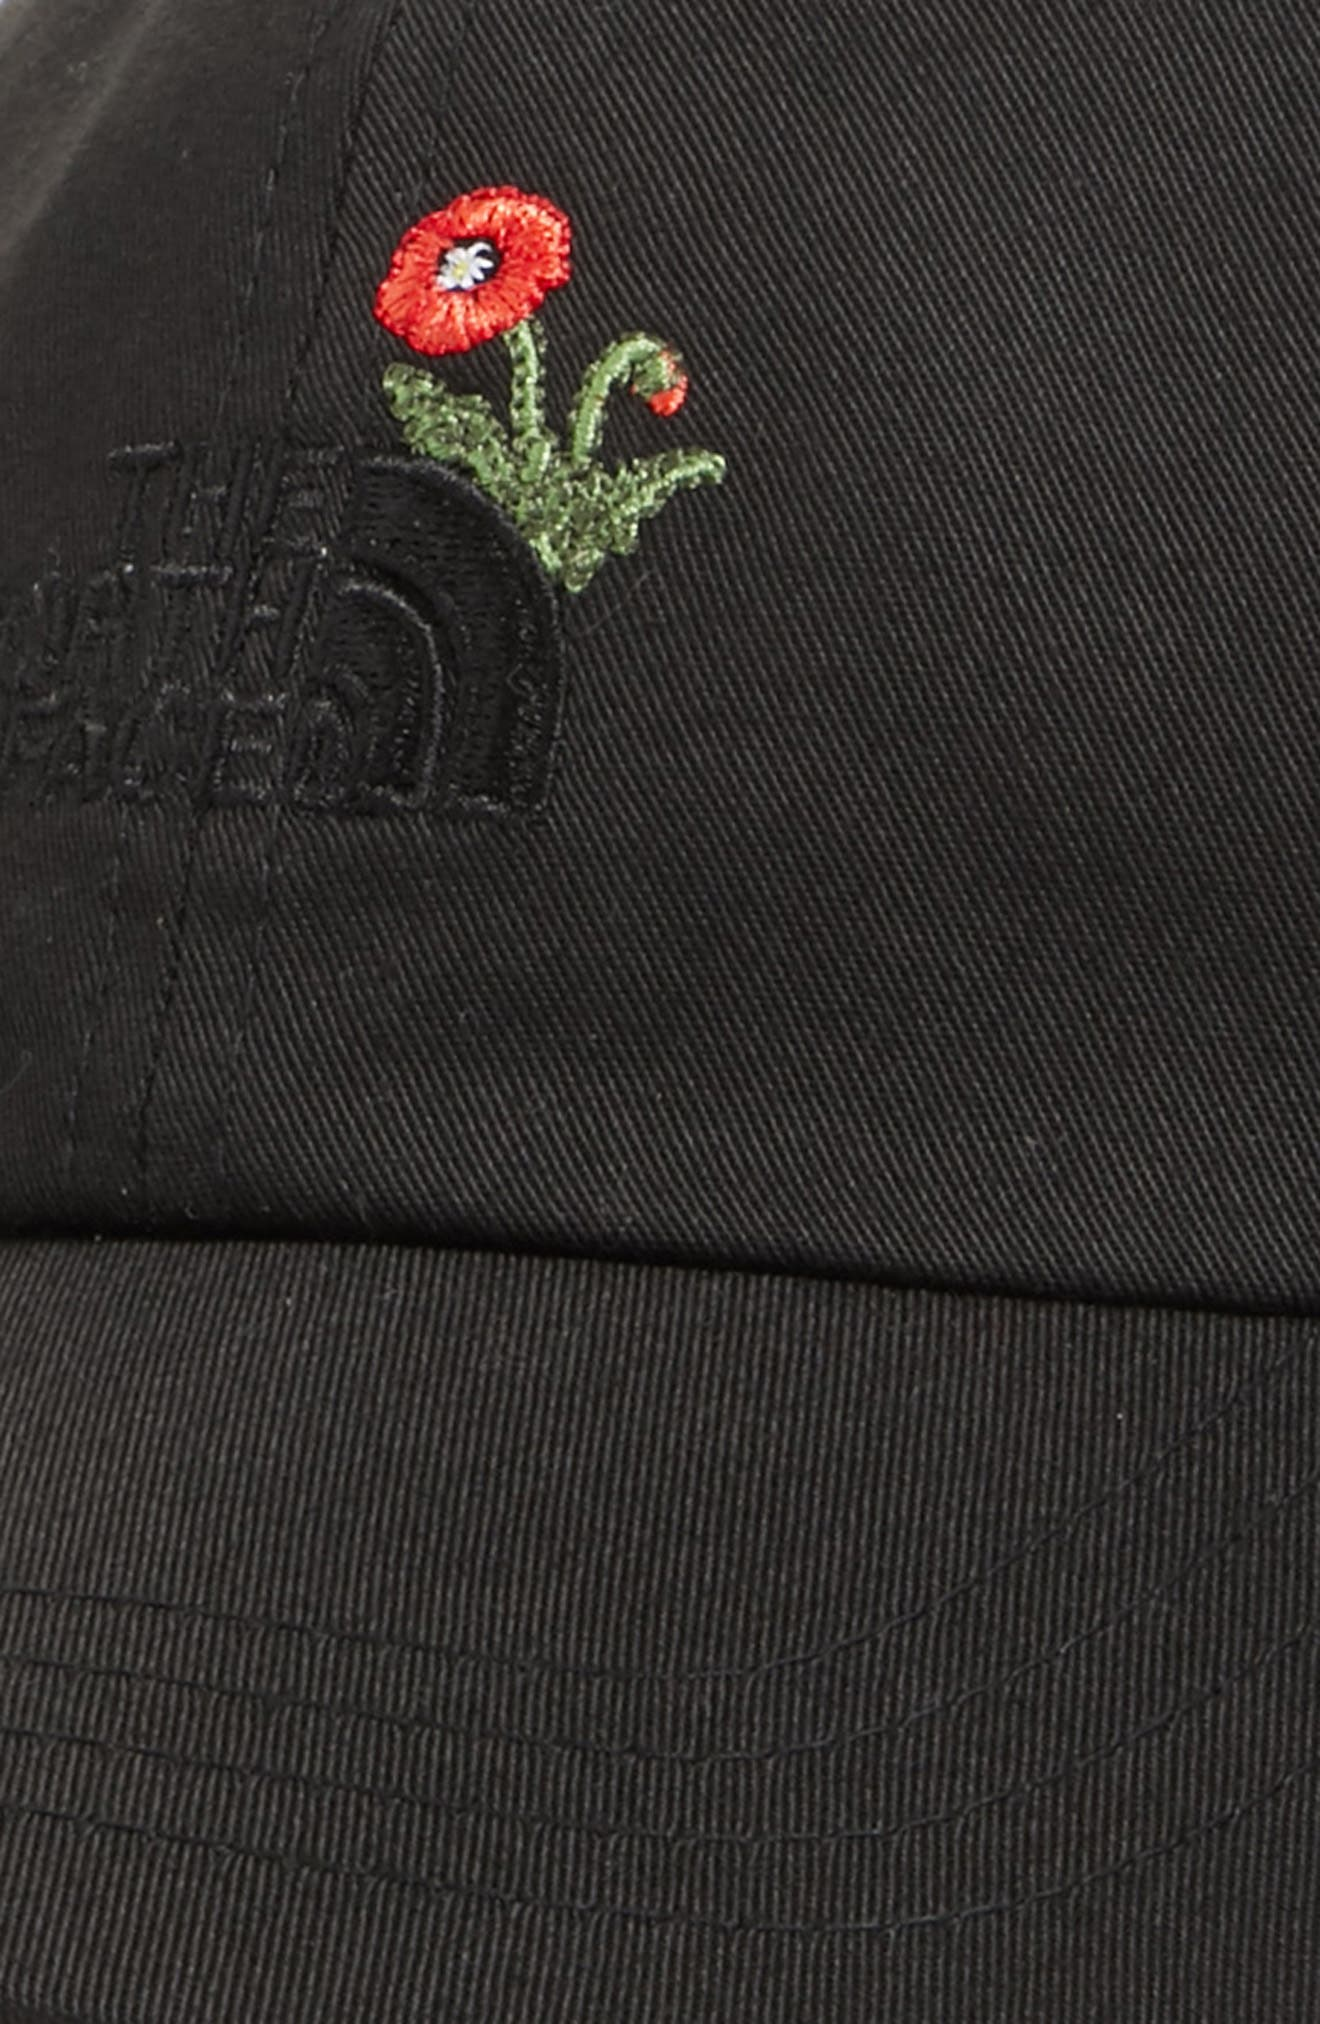 Norm Poppy Embroidered Adjustable Cap,                             Alternate thumbnail 4, color,                             001